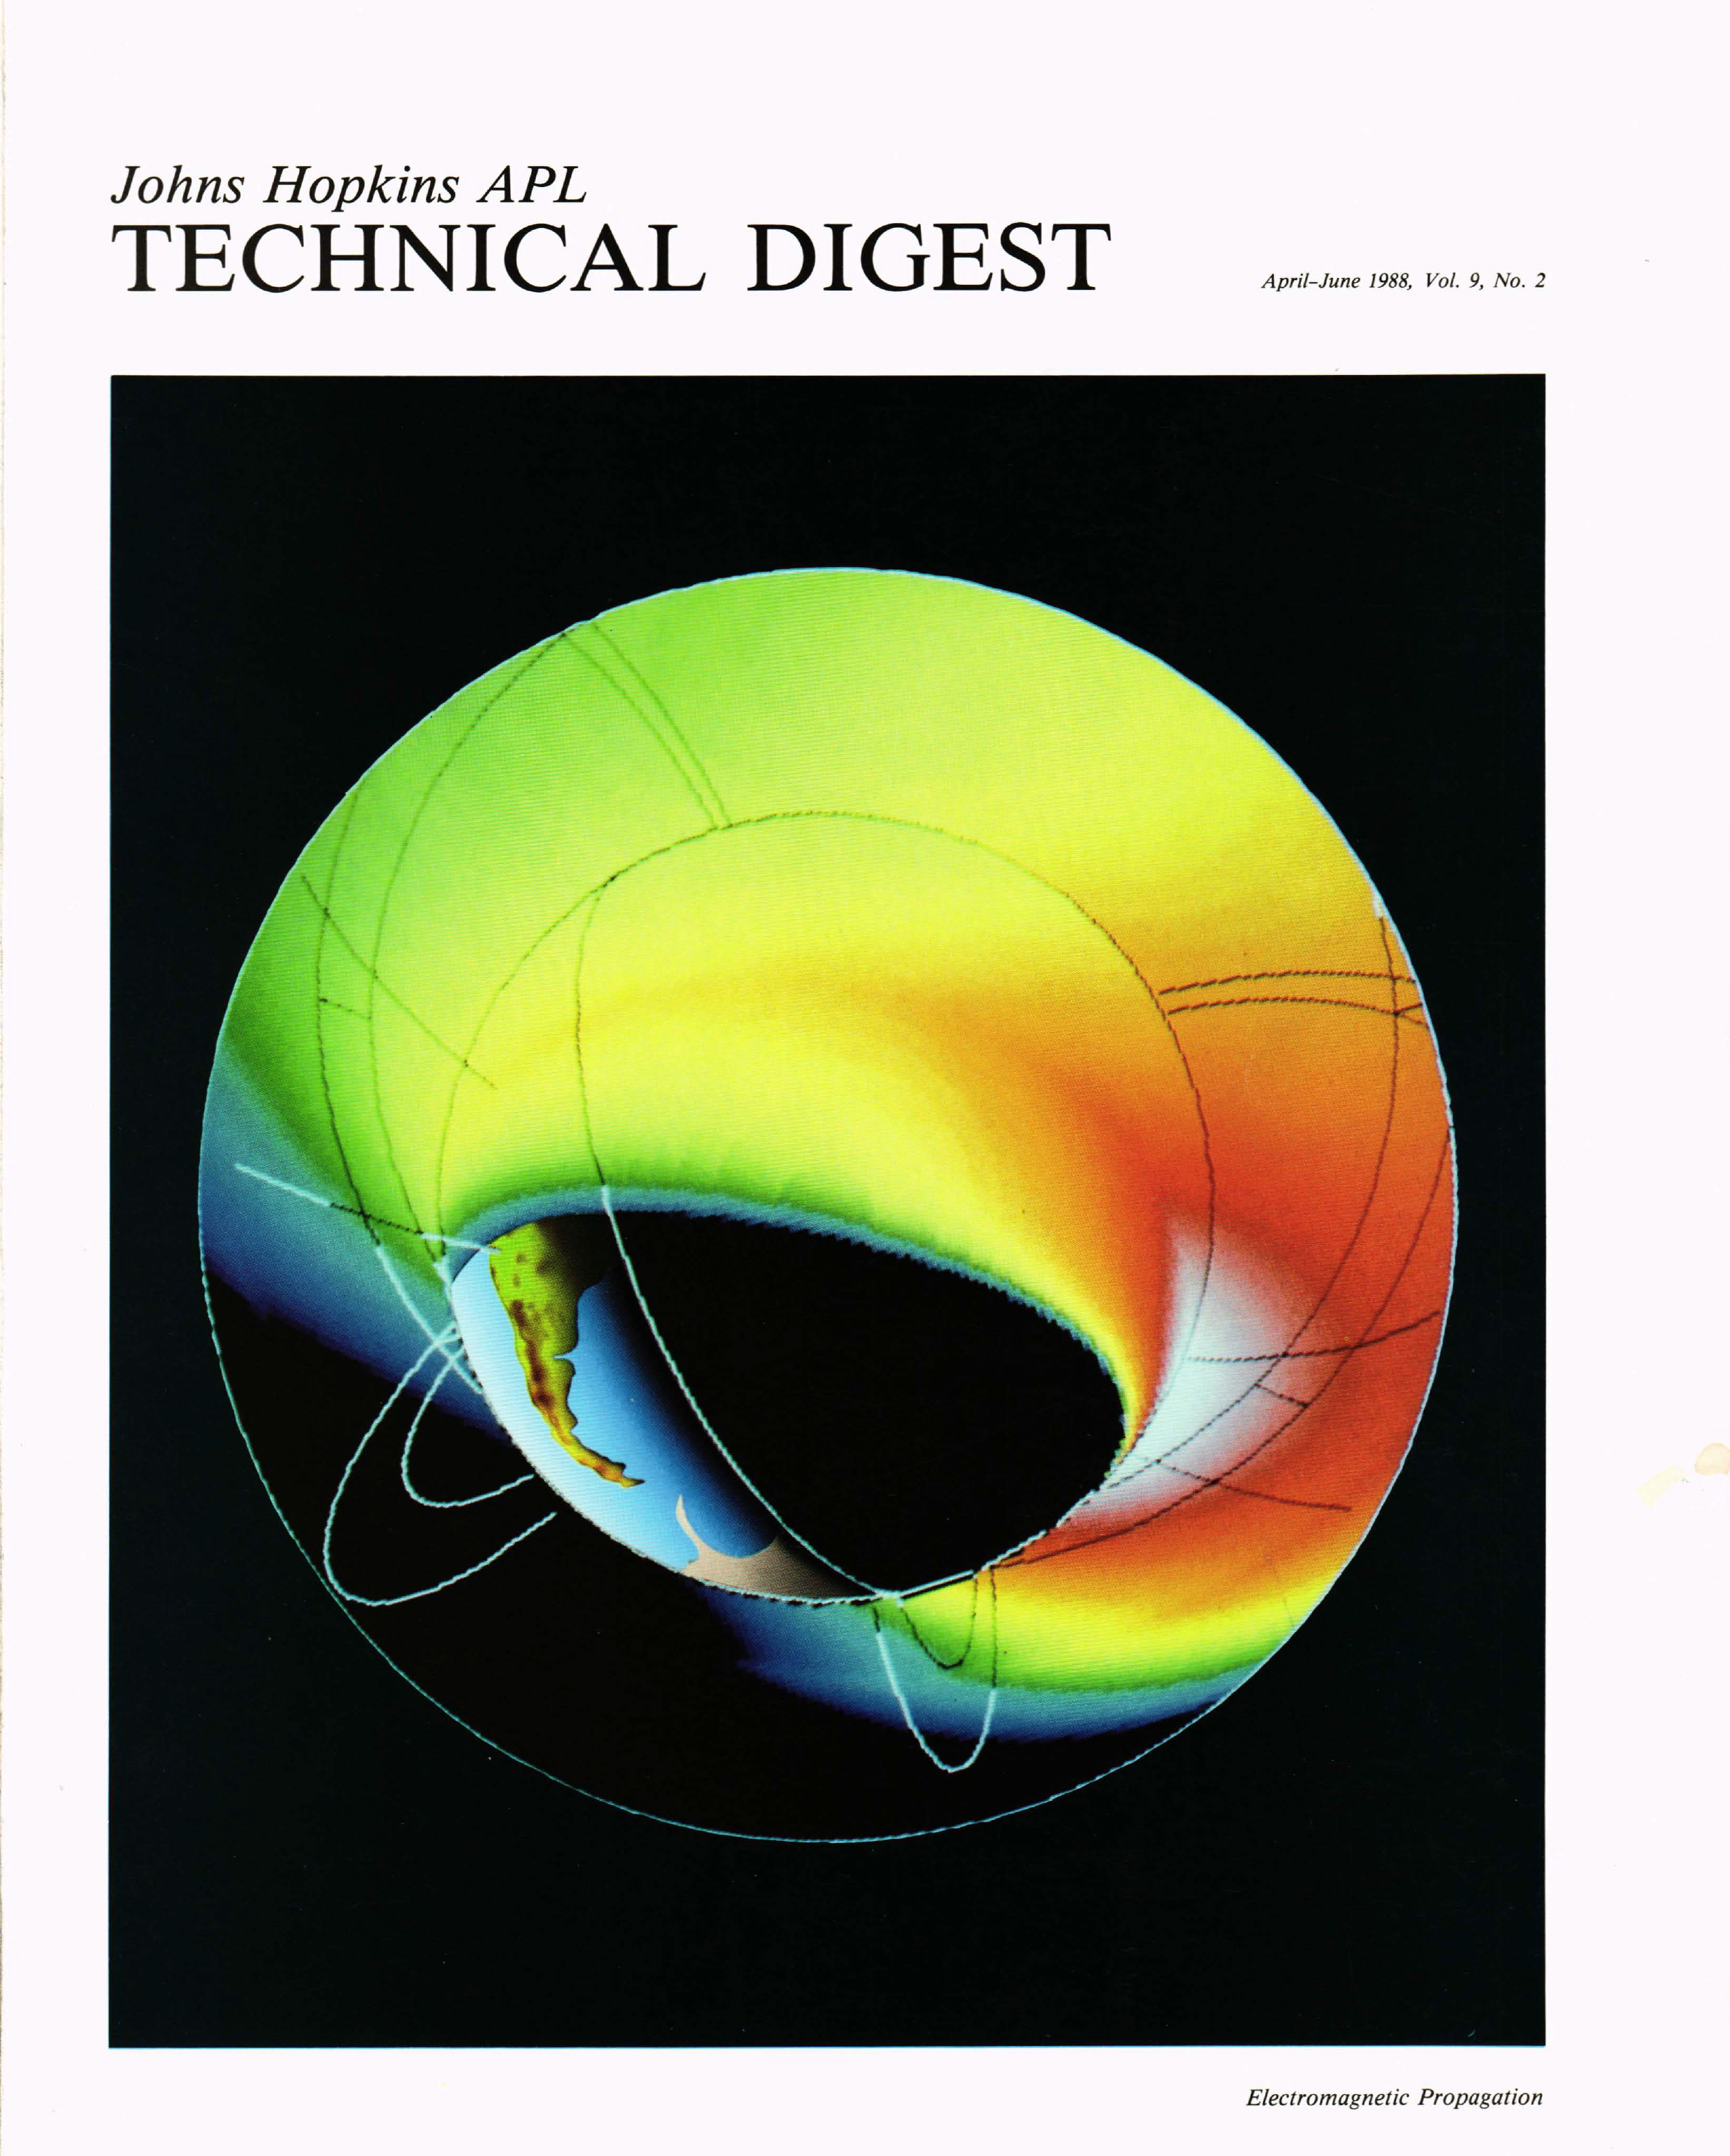 Tech Digest Vol.9 Num.2 Cover